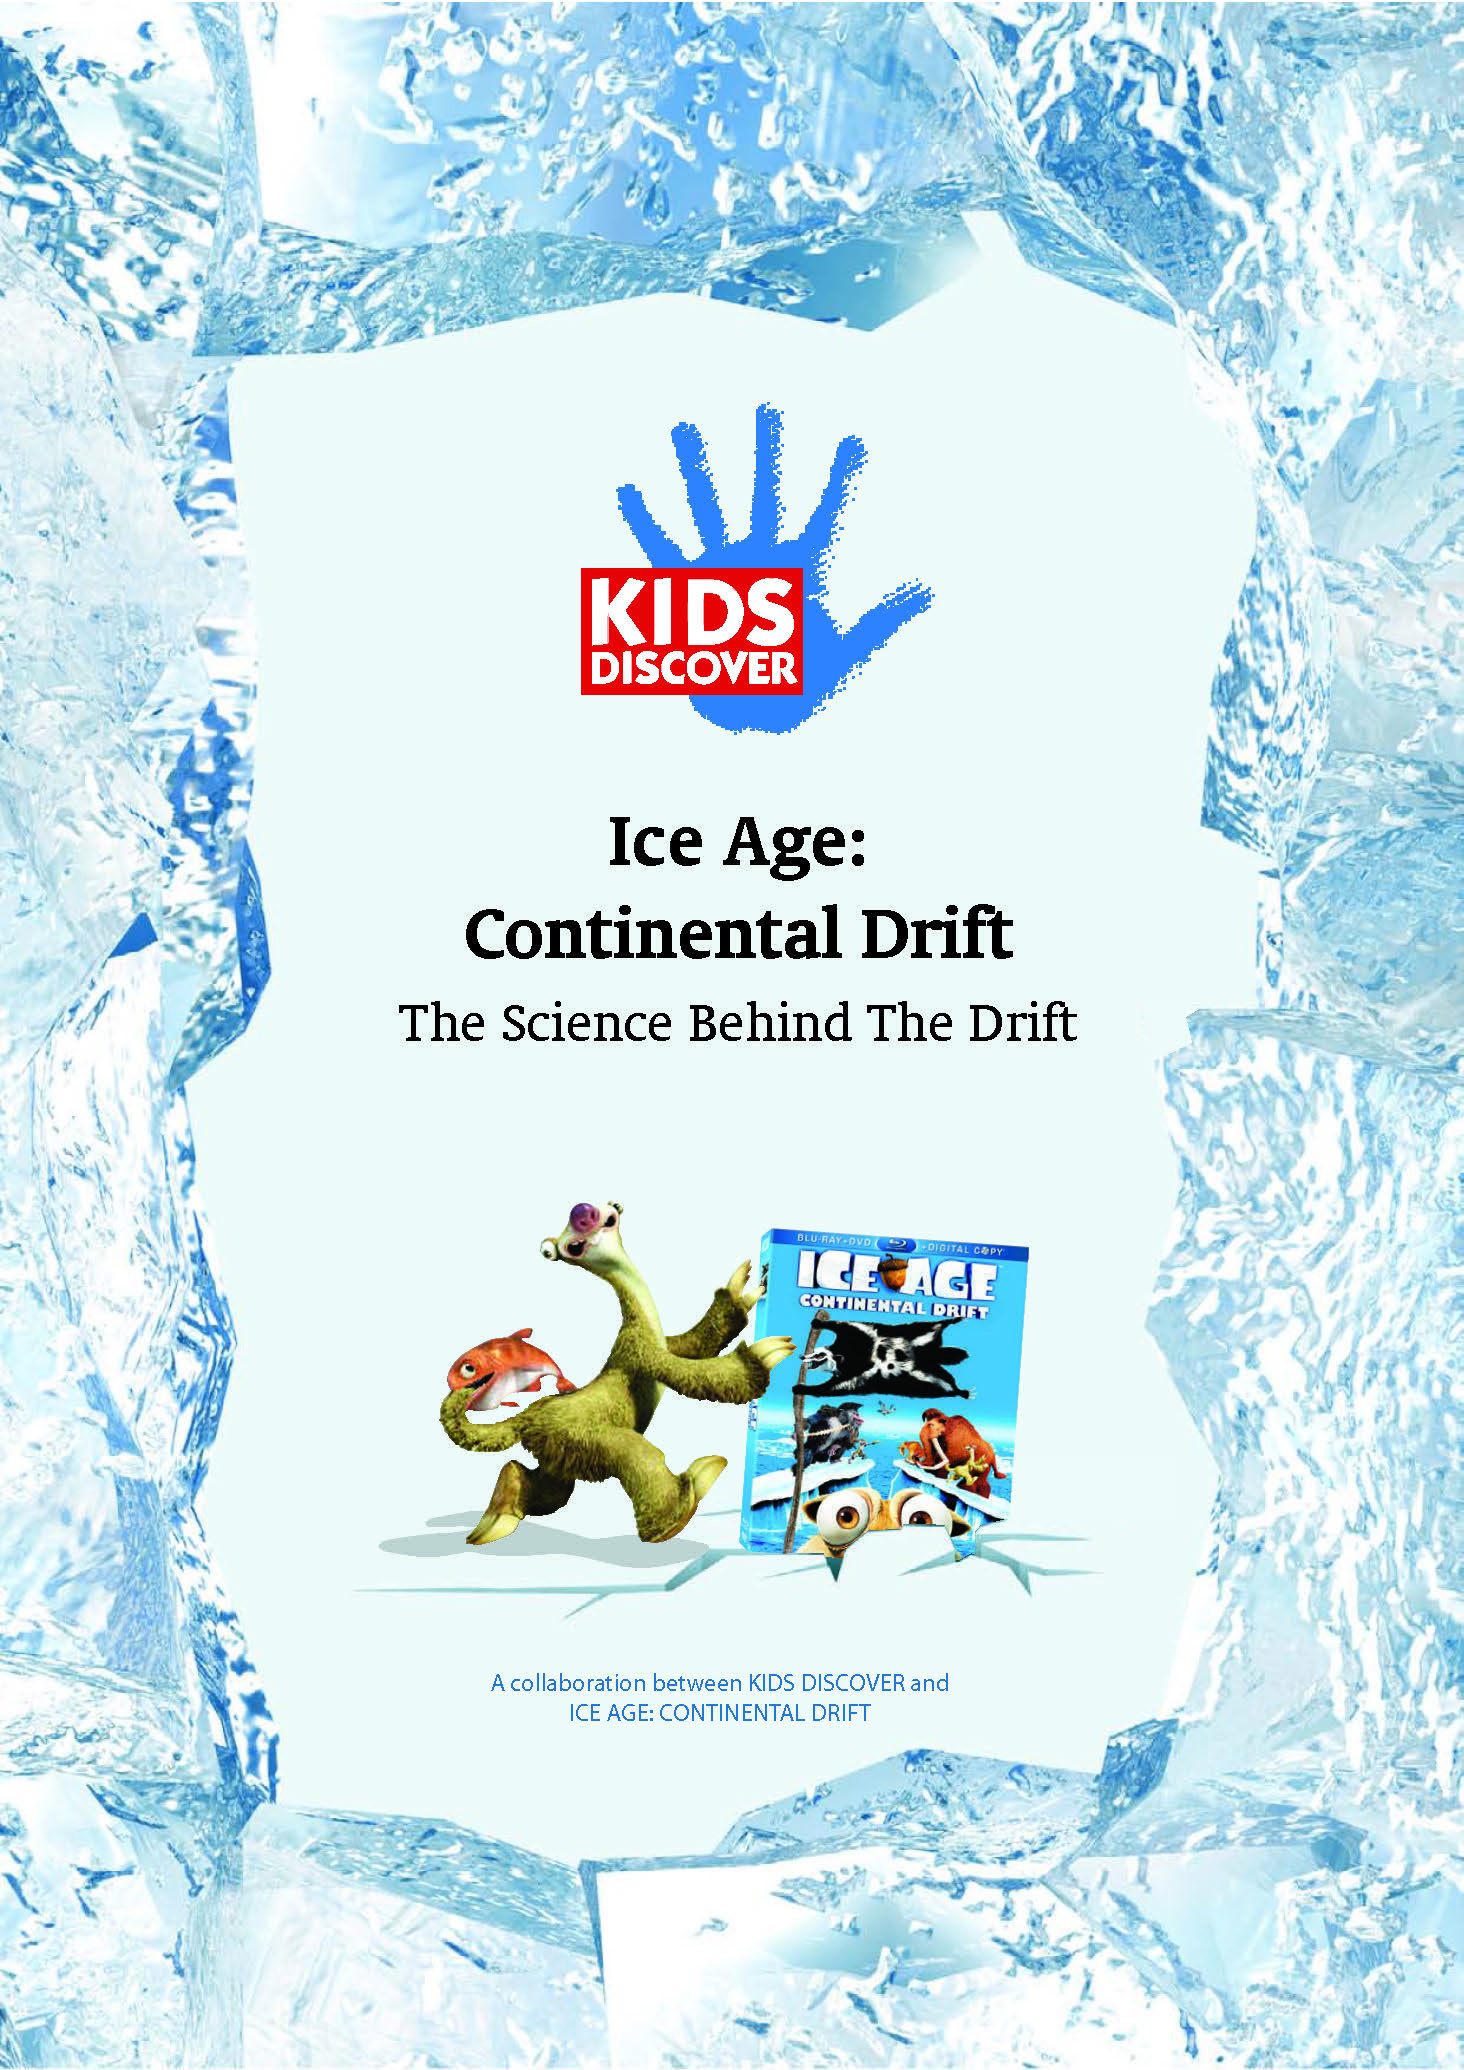 Kids Discover And Ice Age Continental Drift Theory